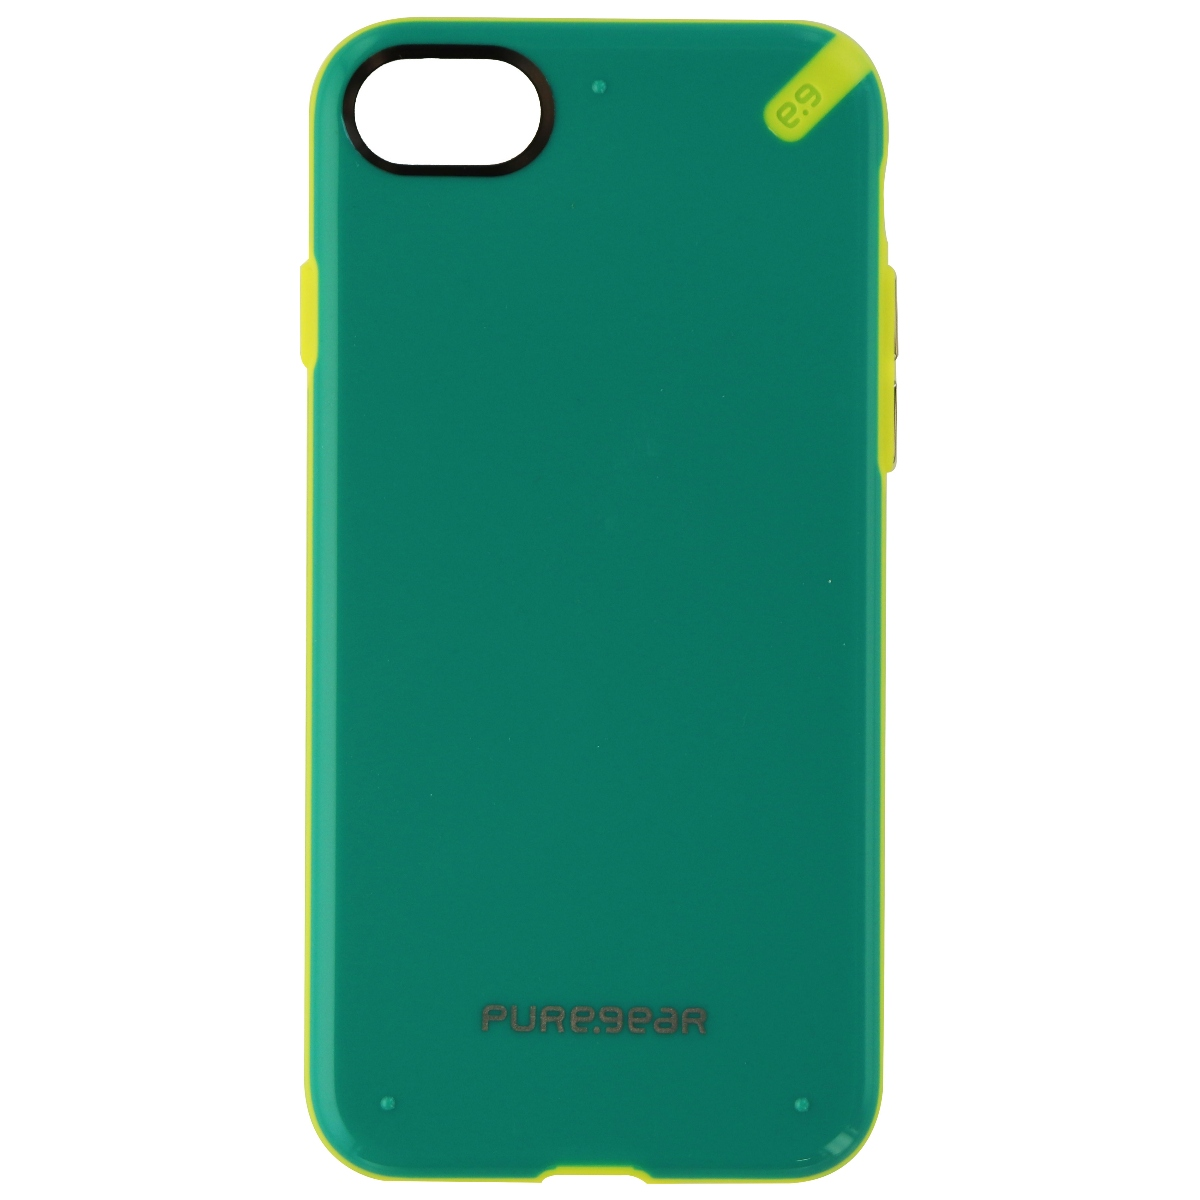 PureGear Slim Shell Series Protective Case Cover for iPhone 8 7 - Green